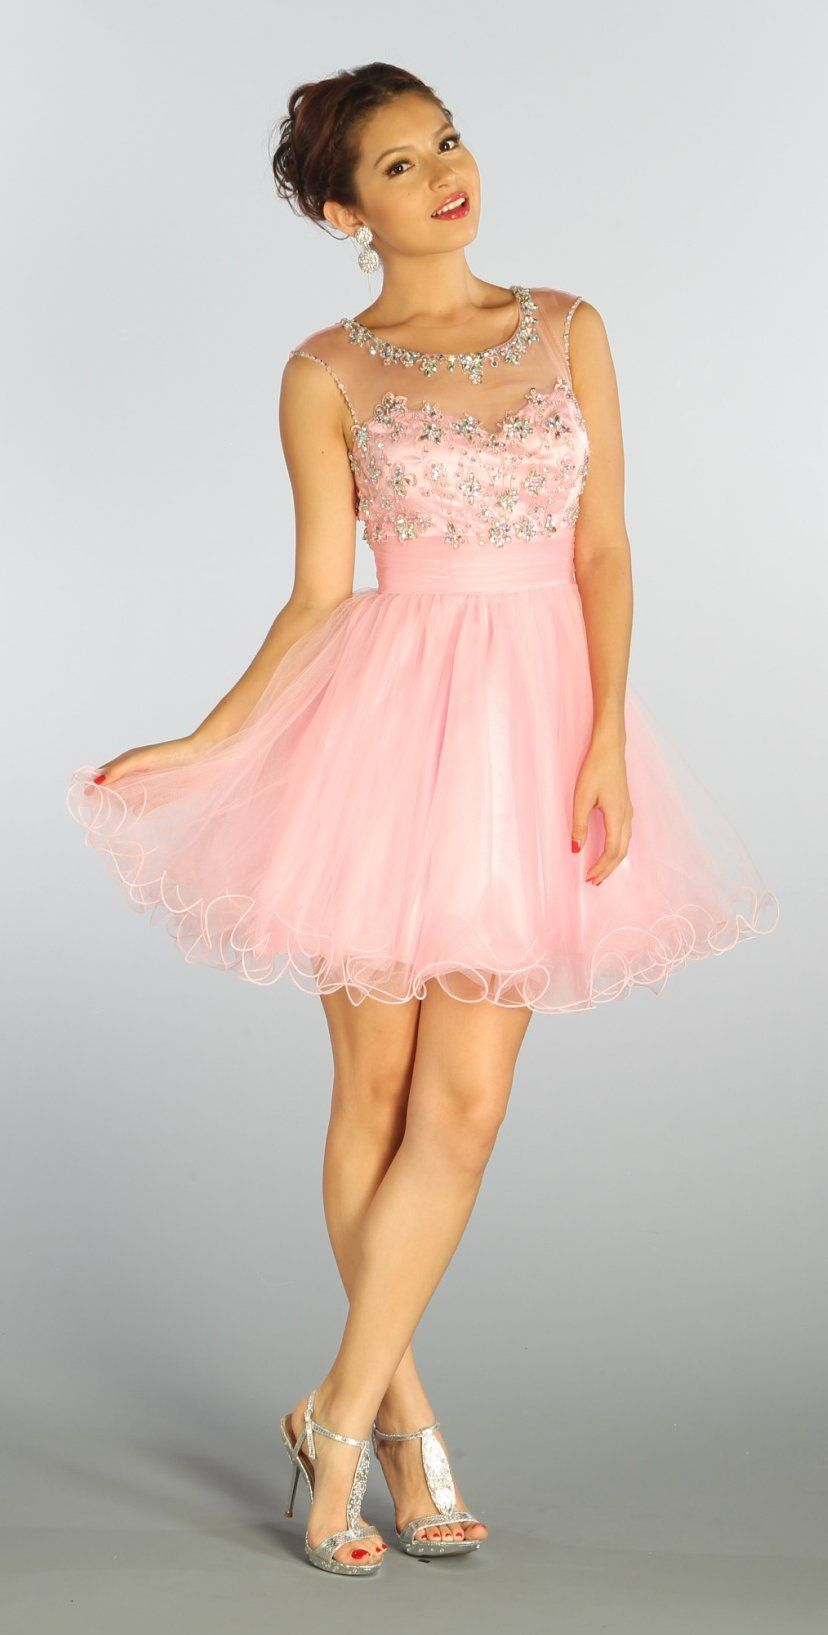 13e1d7e6409 Short Mesh Light Pink Homecoming Dress Lace Appliques Illusion Neck  177.99